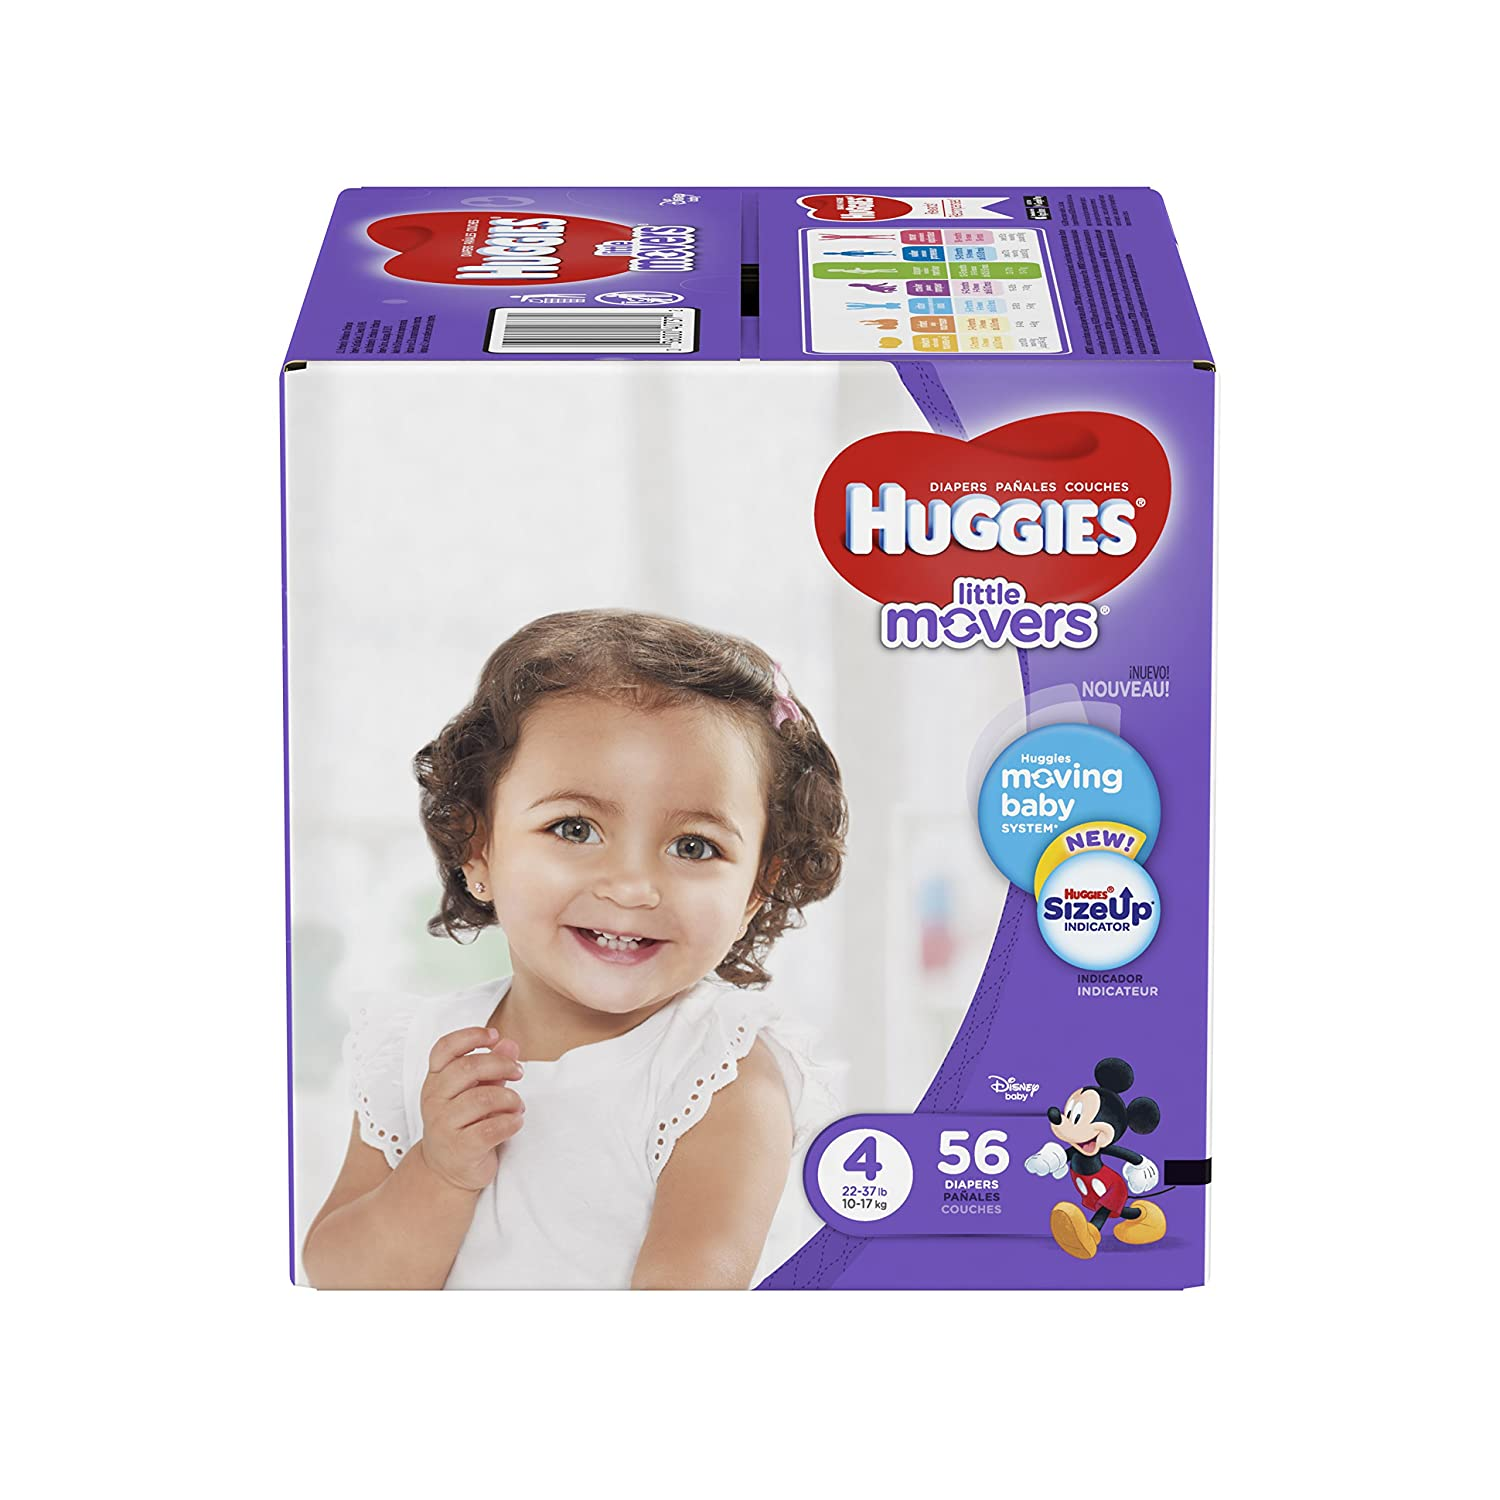 Amazon.com: HUGGIES LITTLE MOVERS Diapers, Size 4 (22-37 lb.), 56 Ct. (Packaging May Vary), Baby Diapers for Active Babies: Health & Personal Care